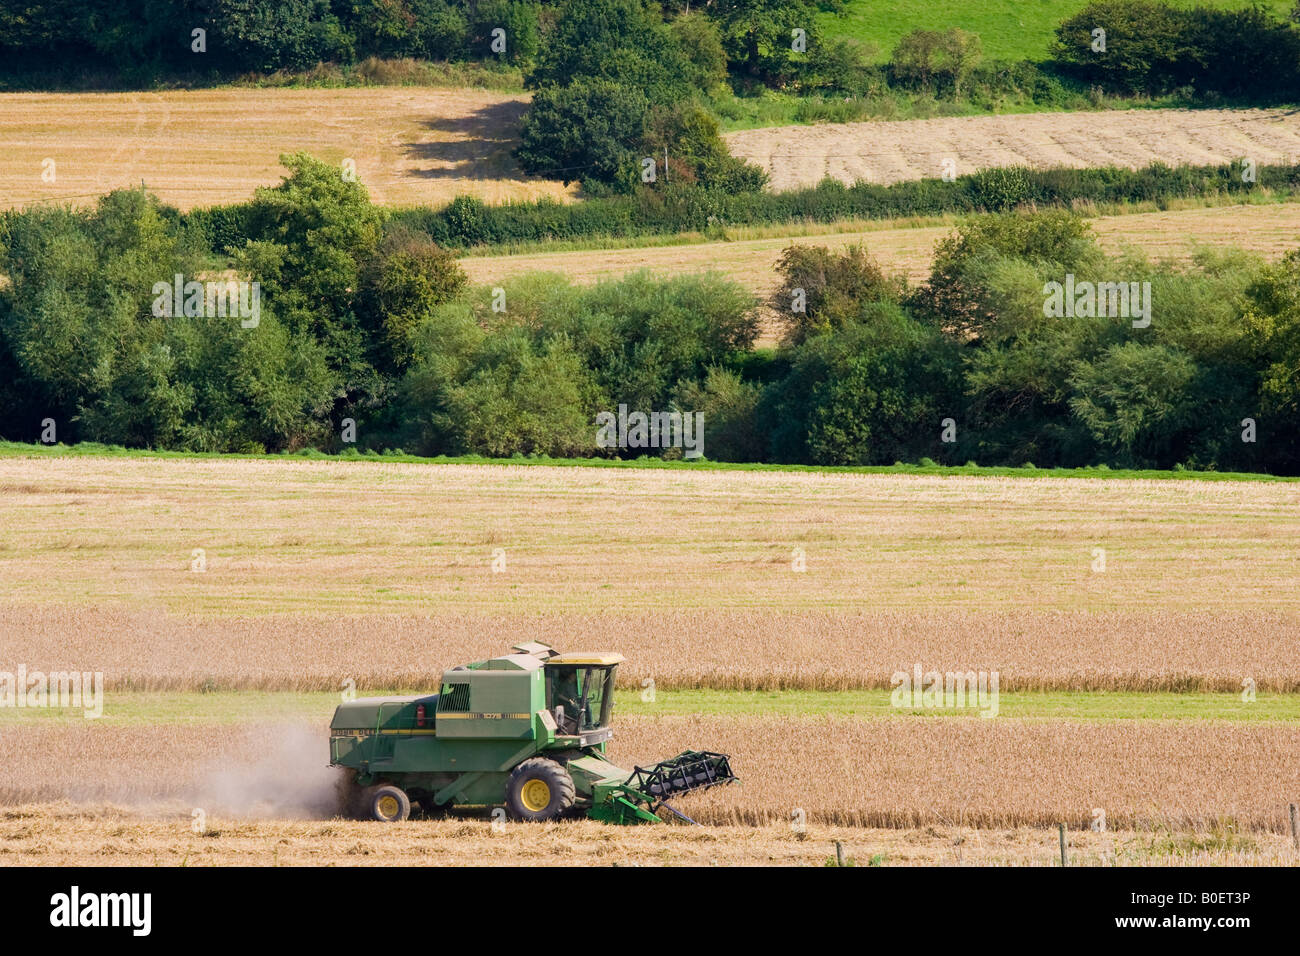 Combine harvester in a wheat field Herefordshire England United Kingdom - Stock Image